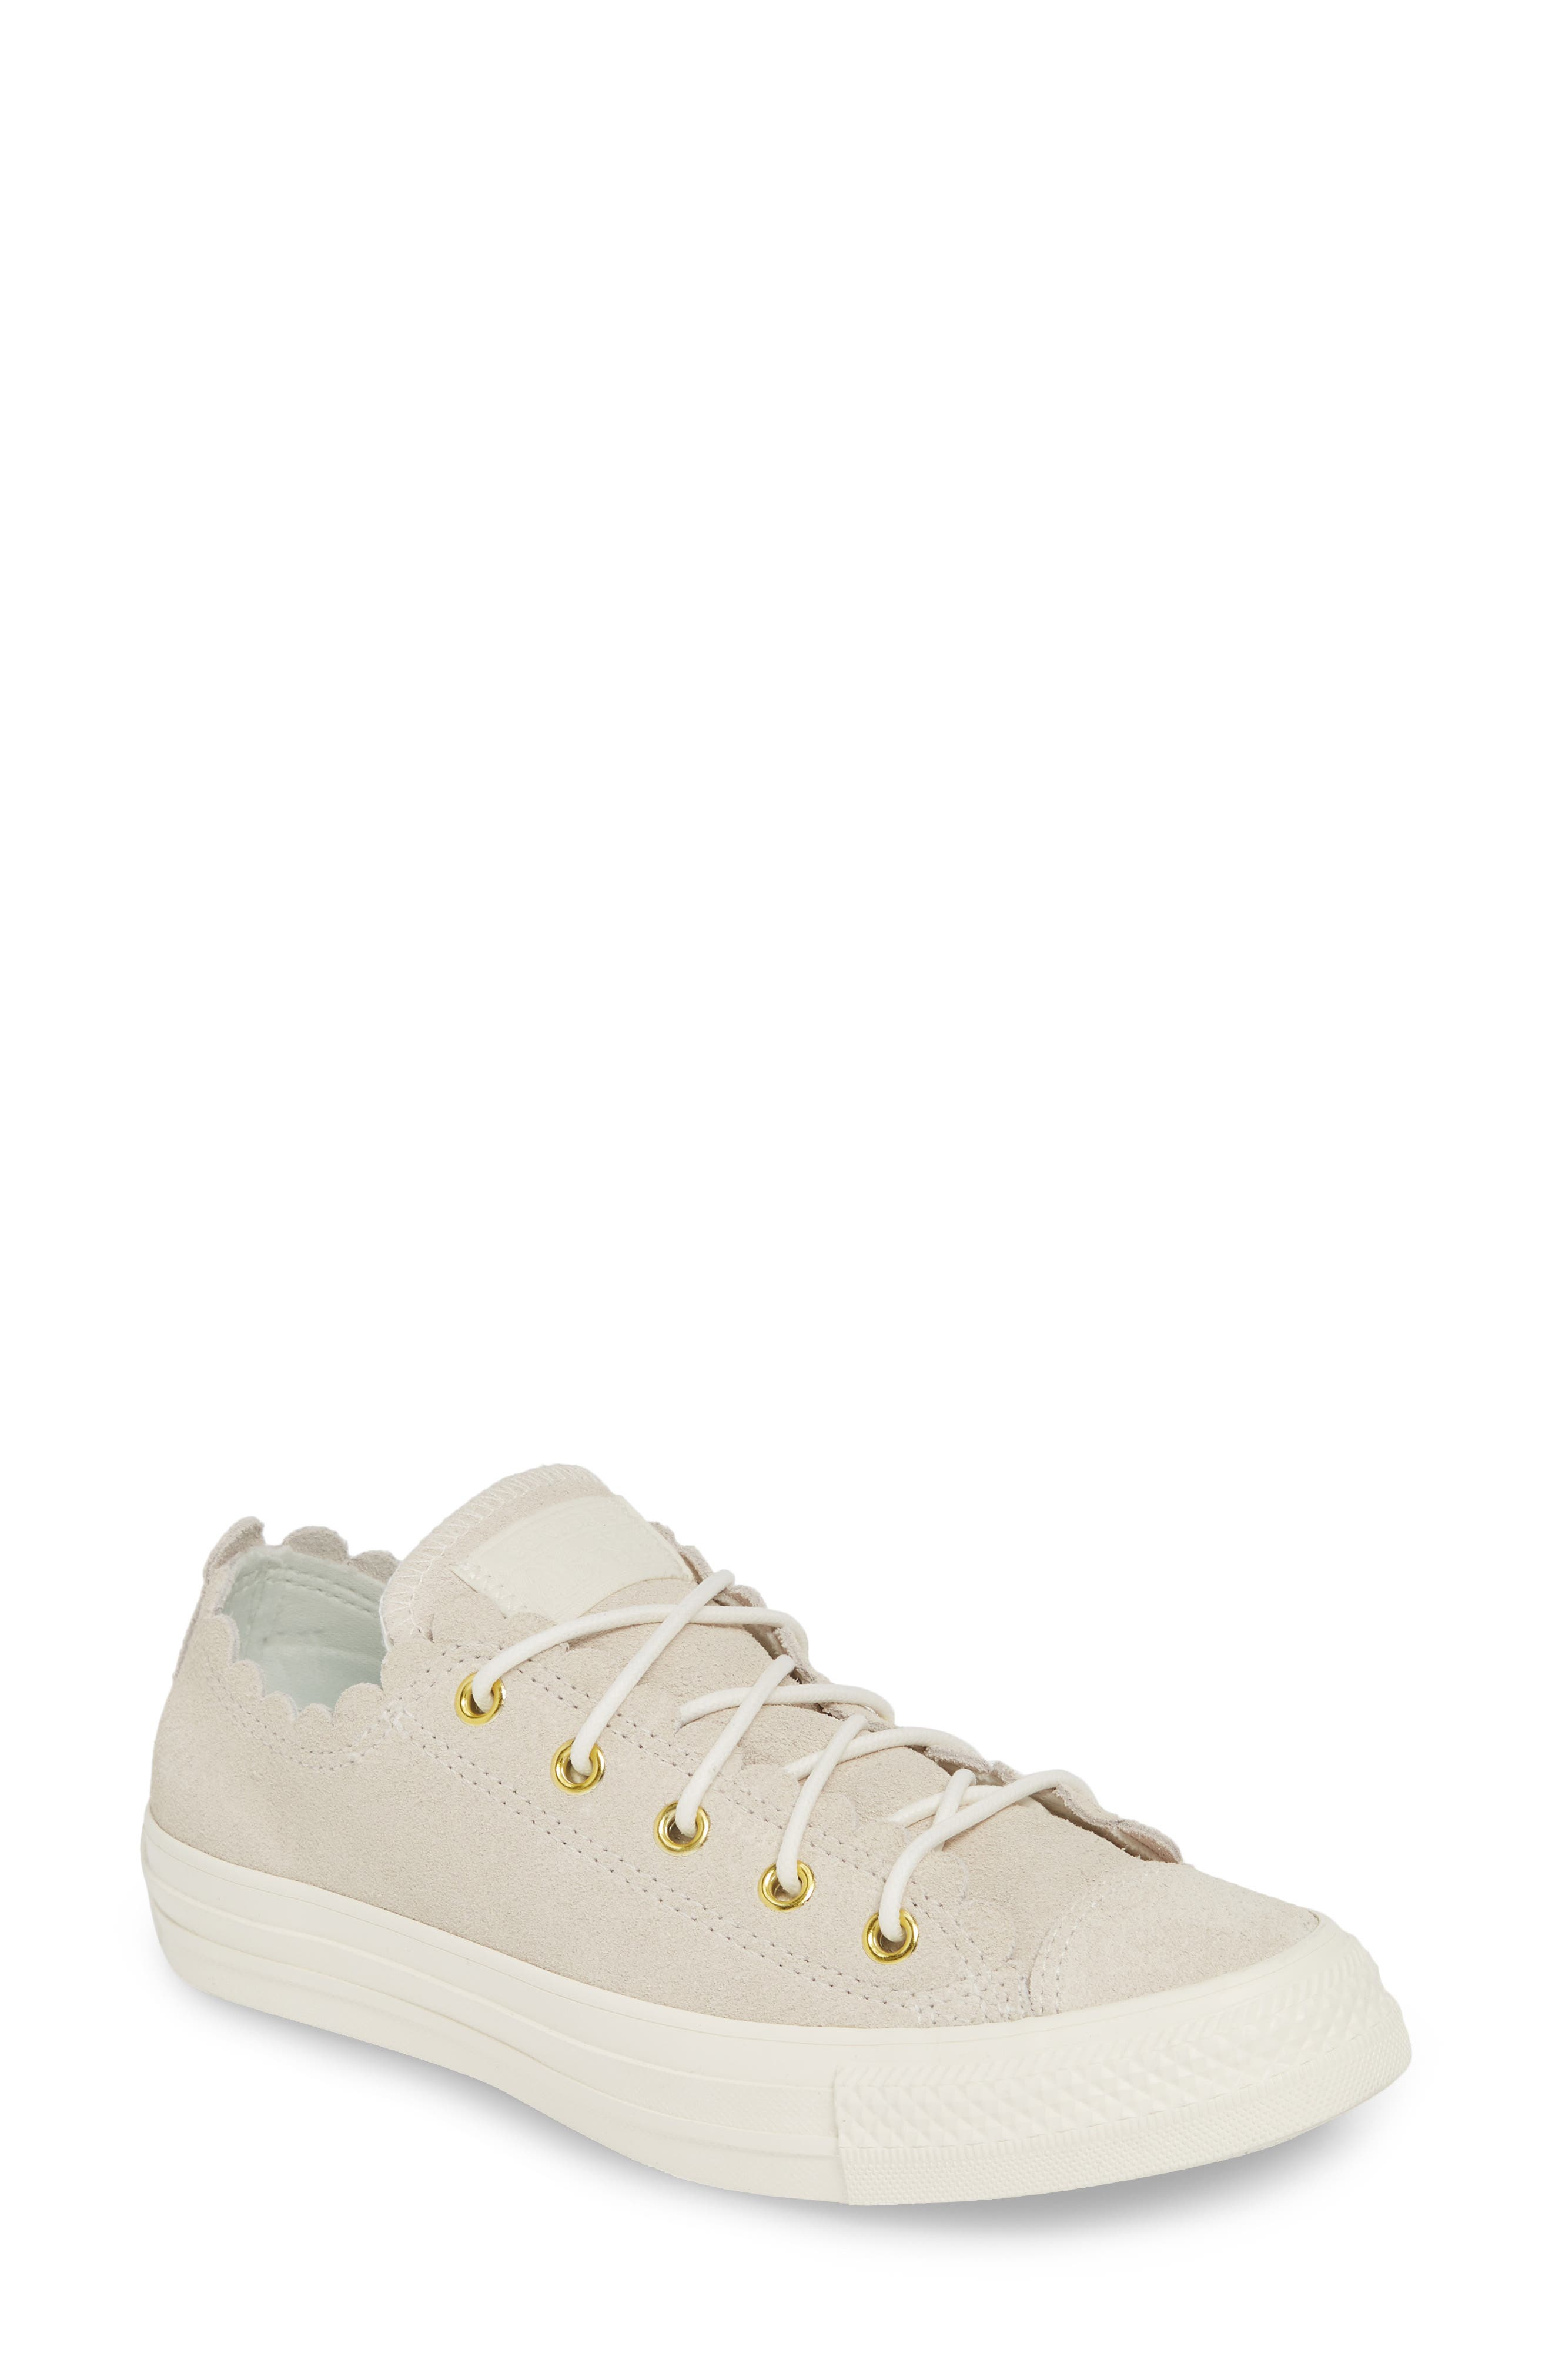 CONVERSE Chuck Taylor<sup>®</sup> All Star<sup>®</sup> Scallop Low Top Leather Sneaker, Main, color, EGRET/ GOLD/ EGRET